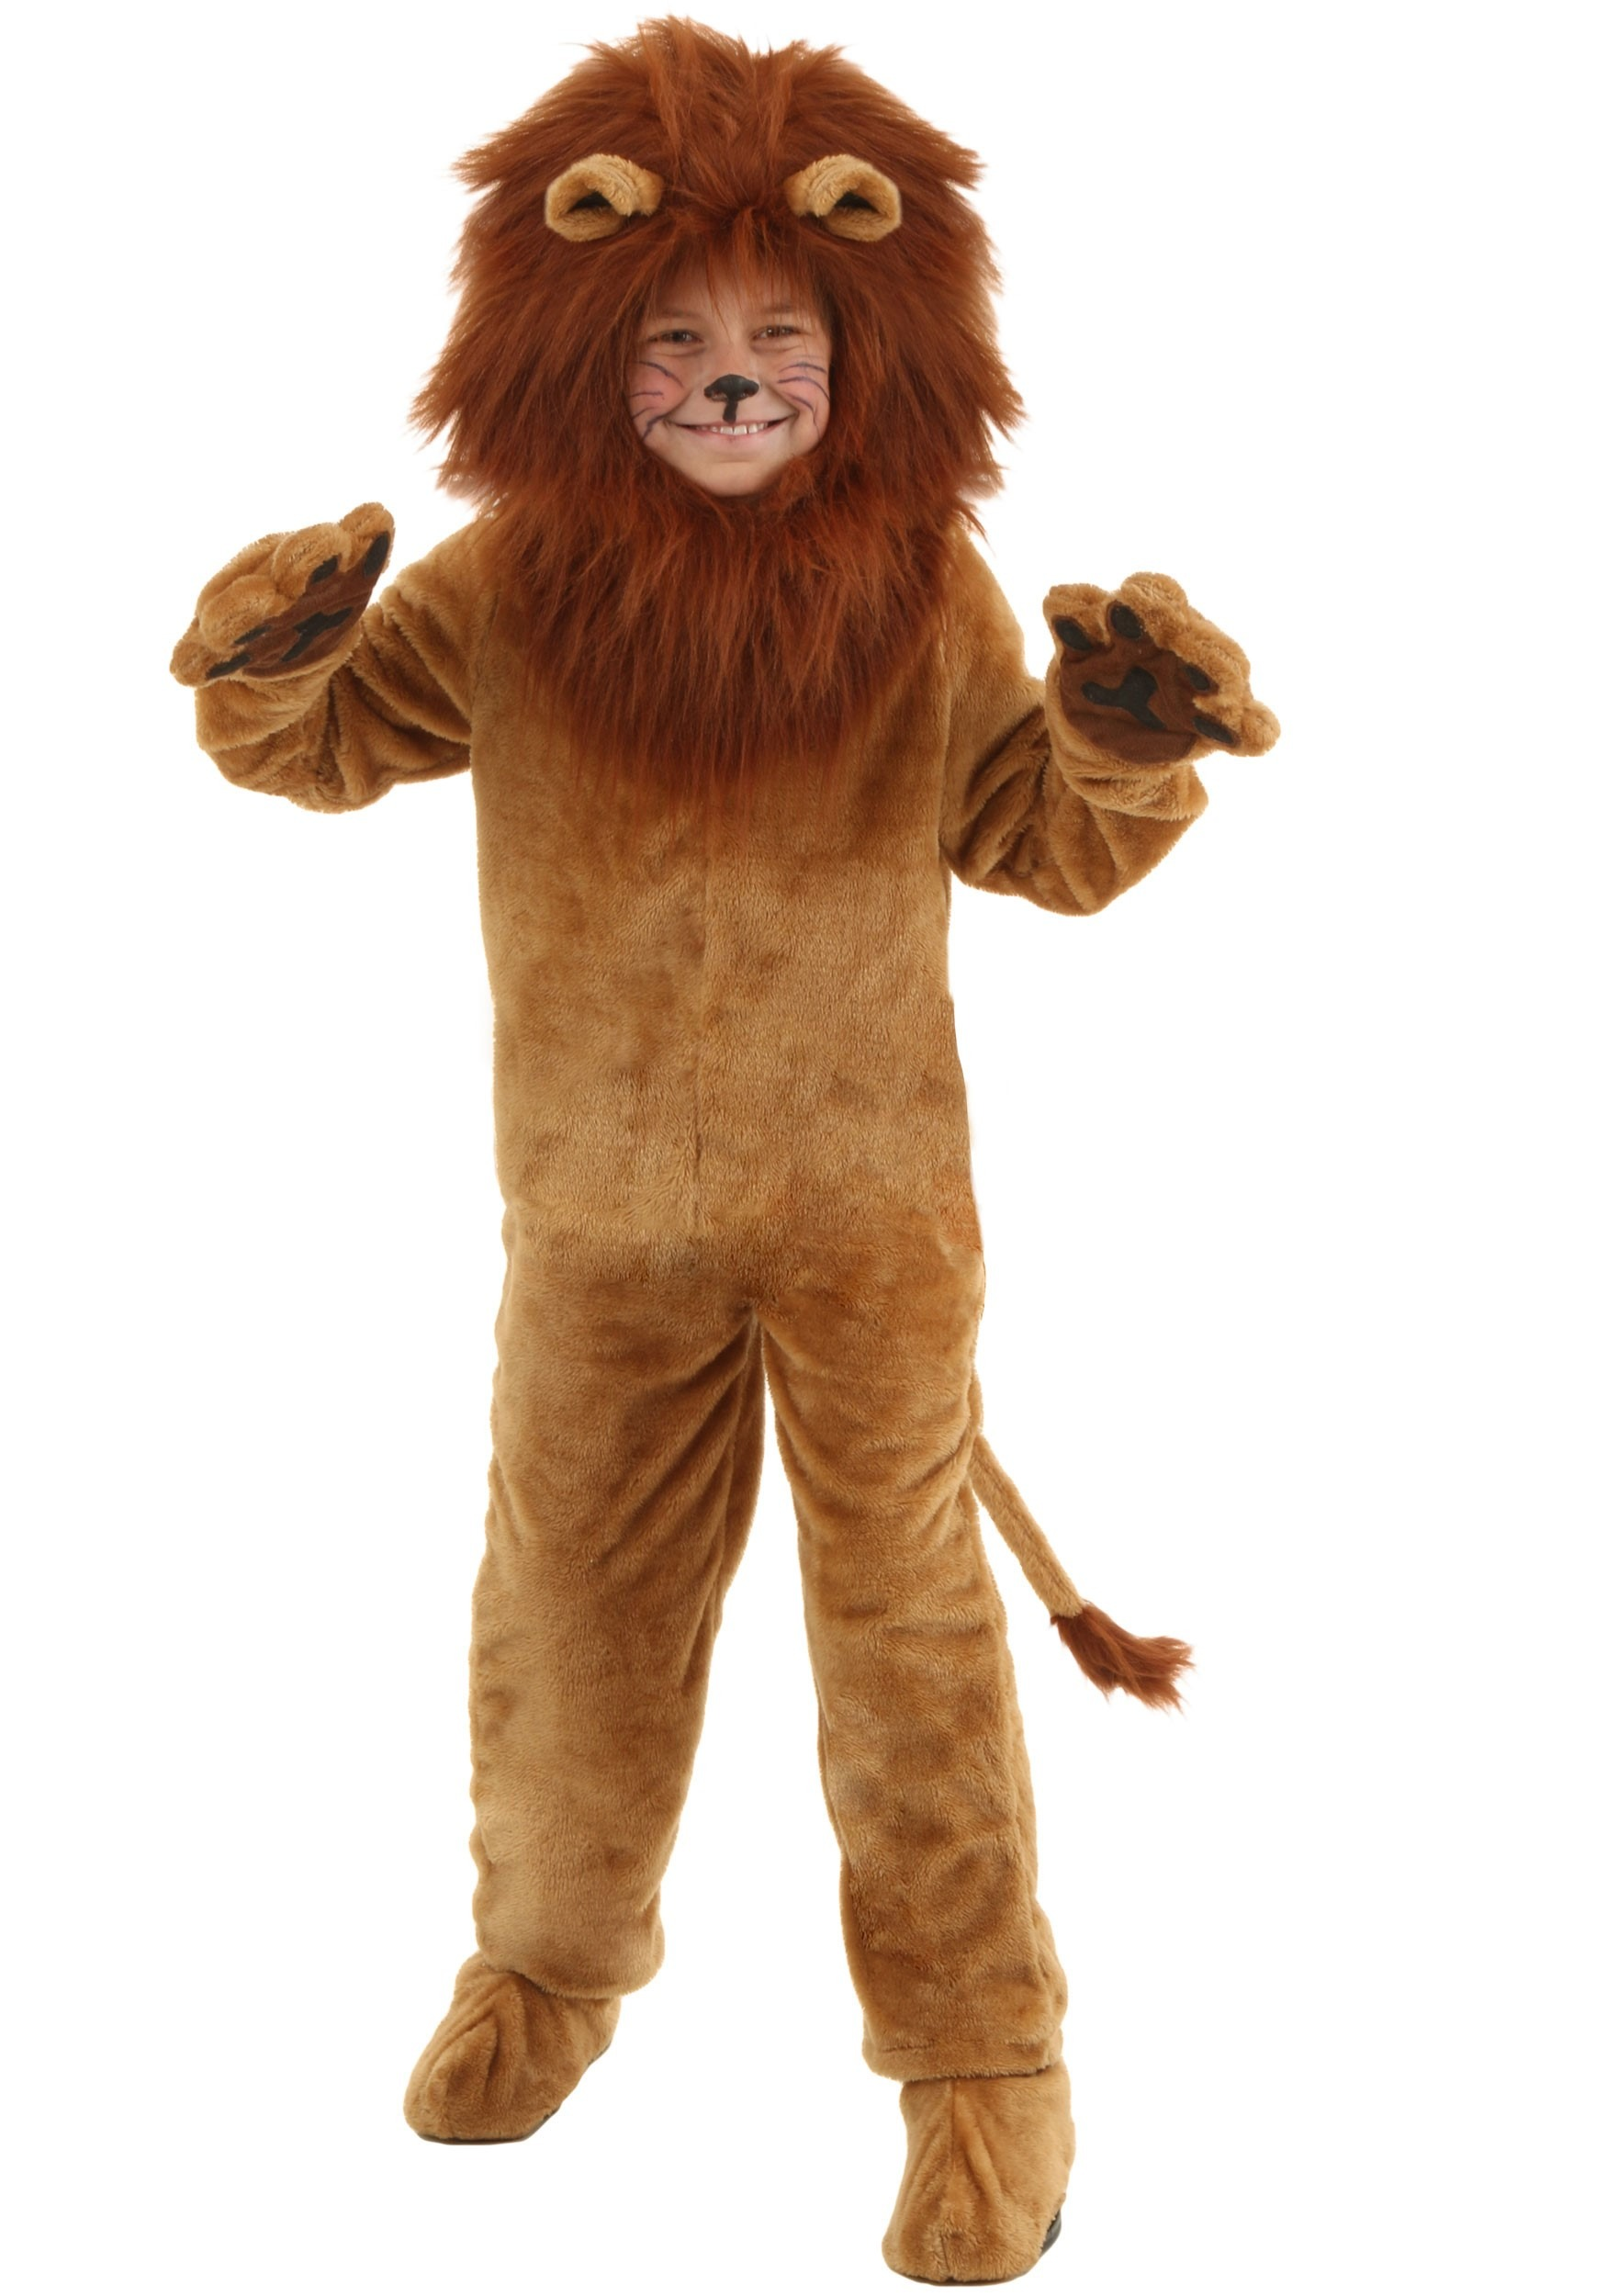 Deluxe Lion Costume for Kids | Safari Kids Costume | Exclusive